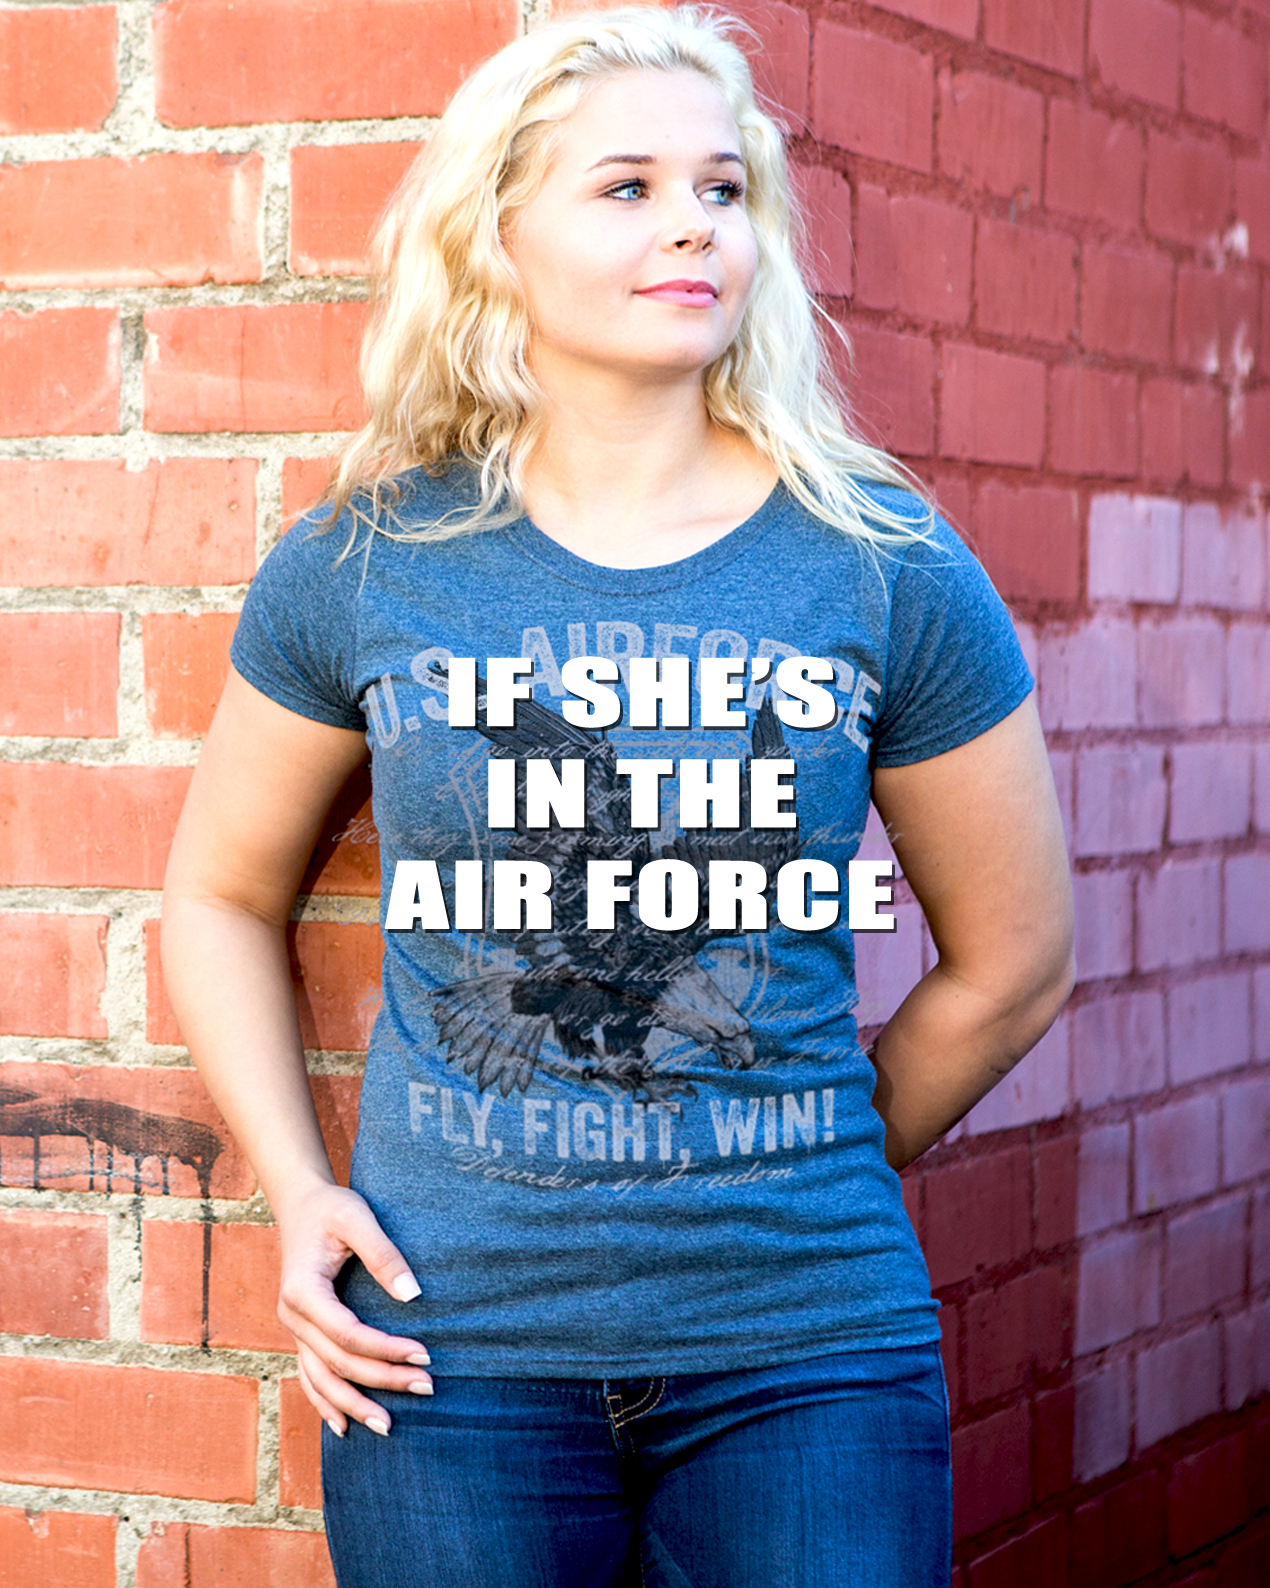 shes-in-the-air-force.jpg